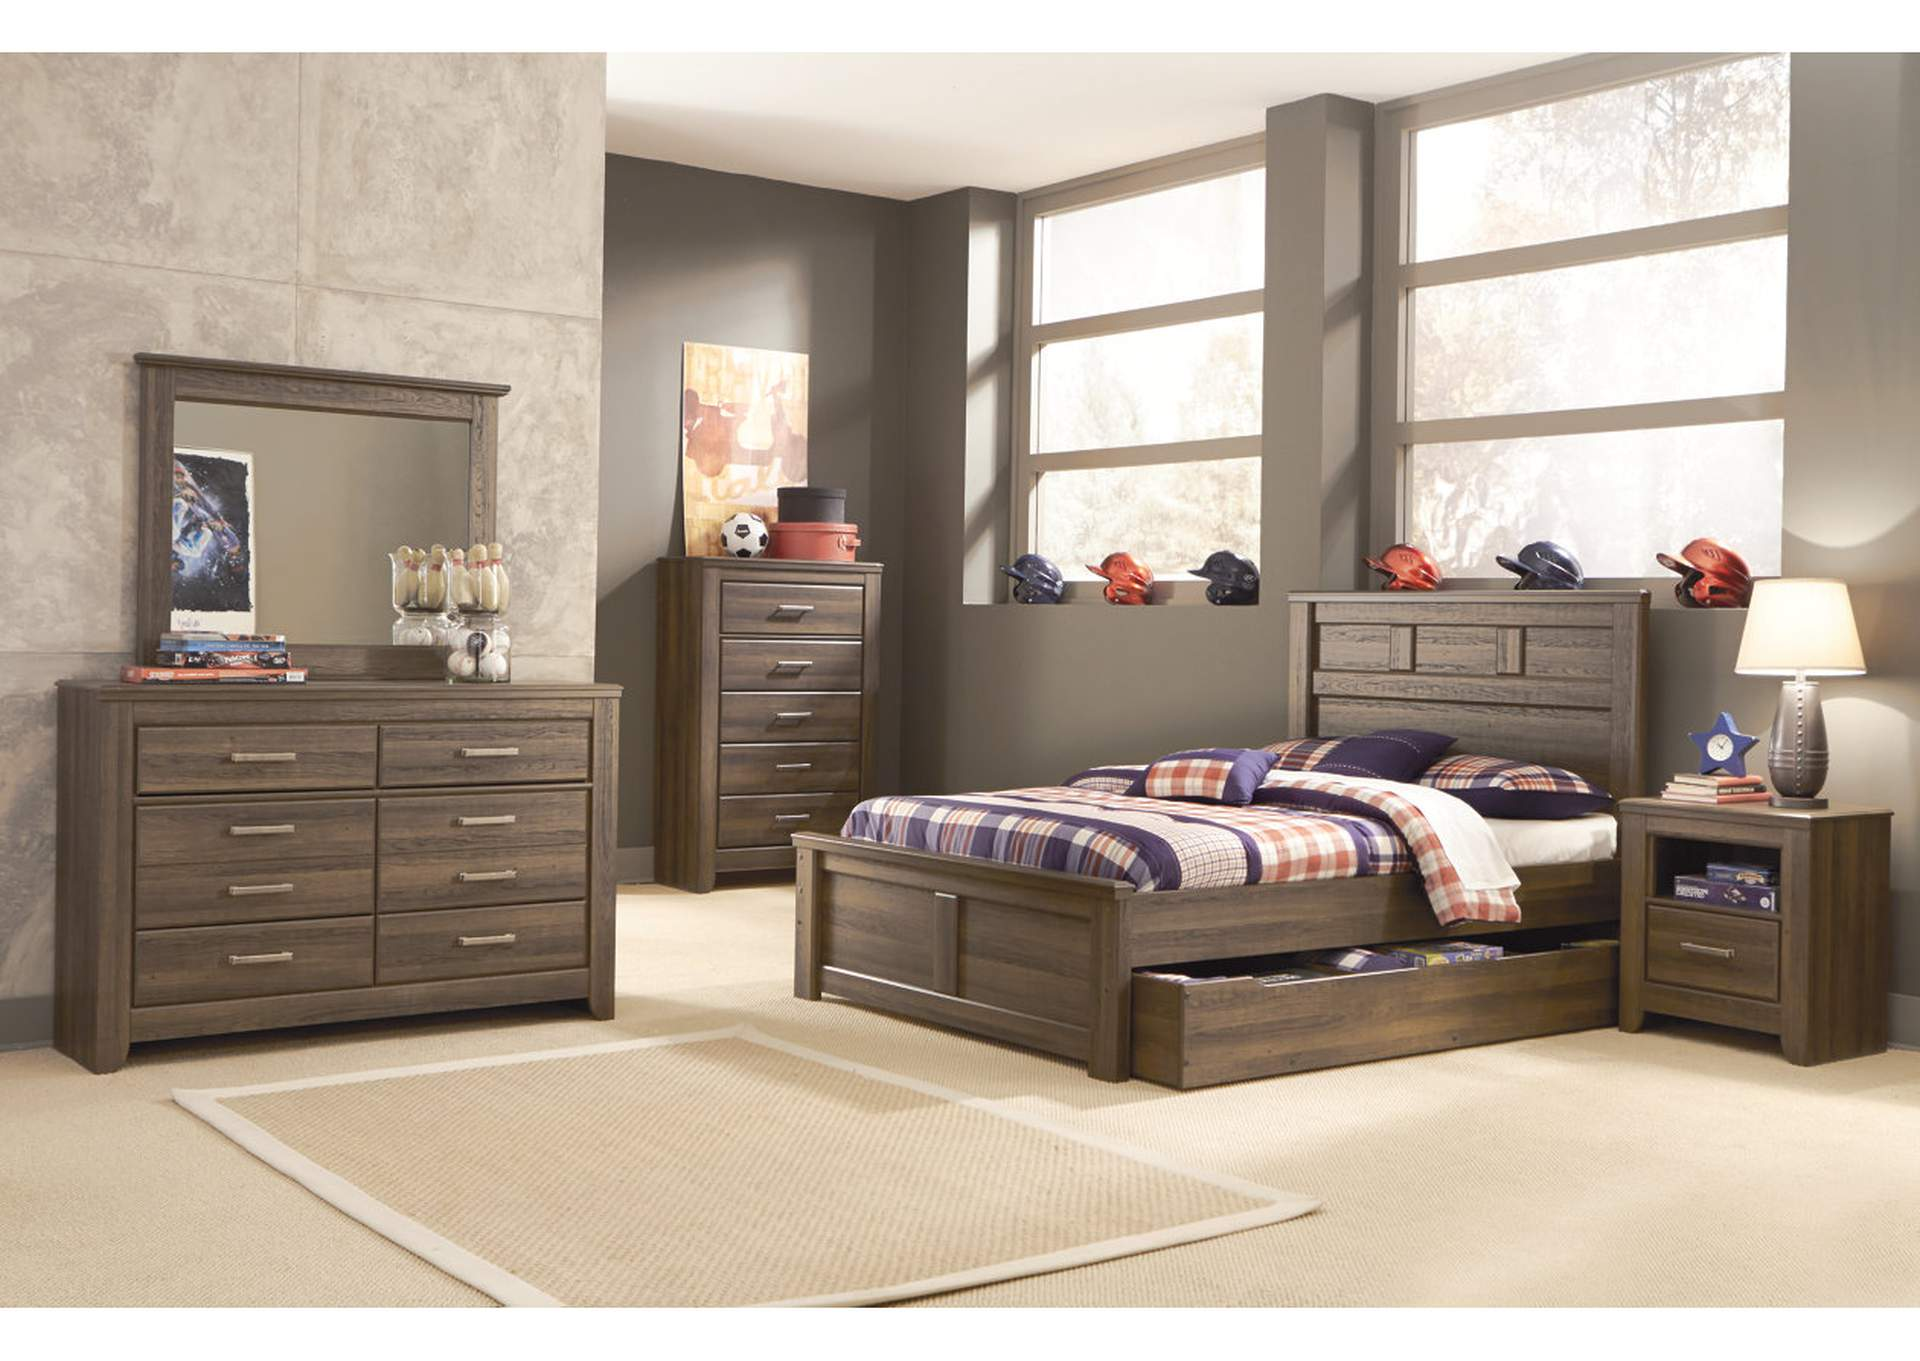 Juararo Full Panel Storage Bed w/Dresser, Mirror & Drawer Chest,Signature Design By Ashley